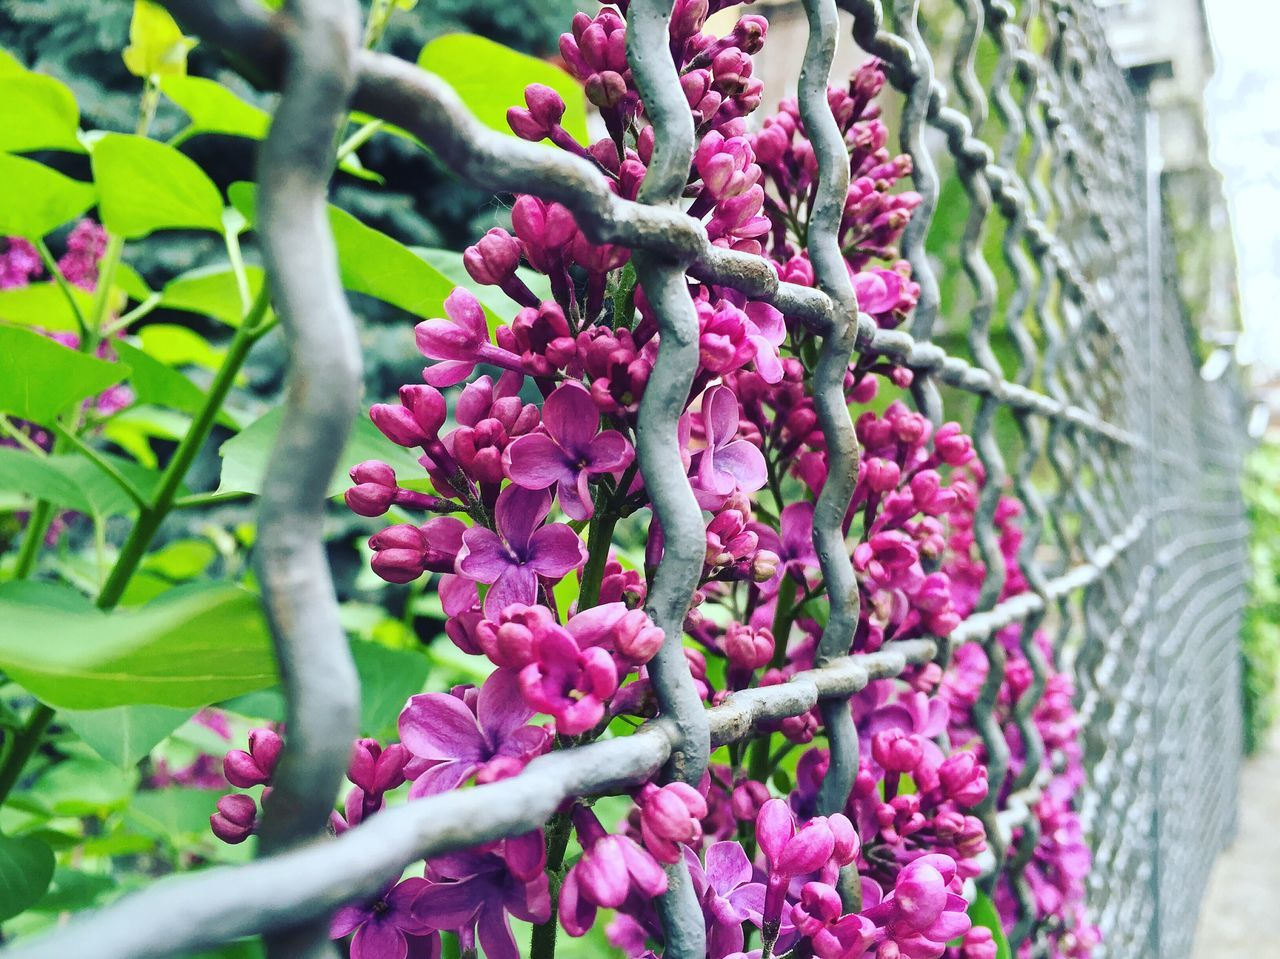 growth, plant, nature, purple, outdoors, day, no people, flower, freshness, beauty in nature, fruit, fragility, close-up